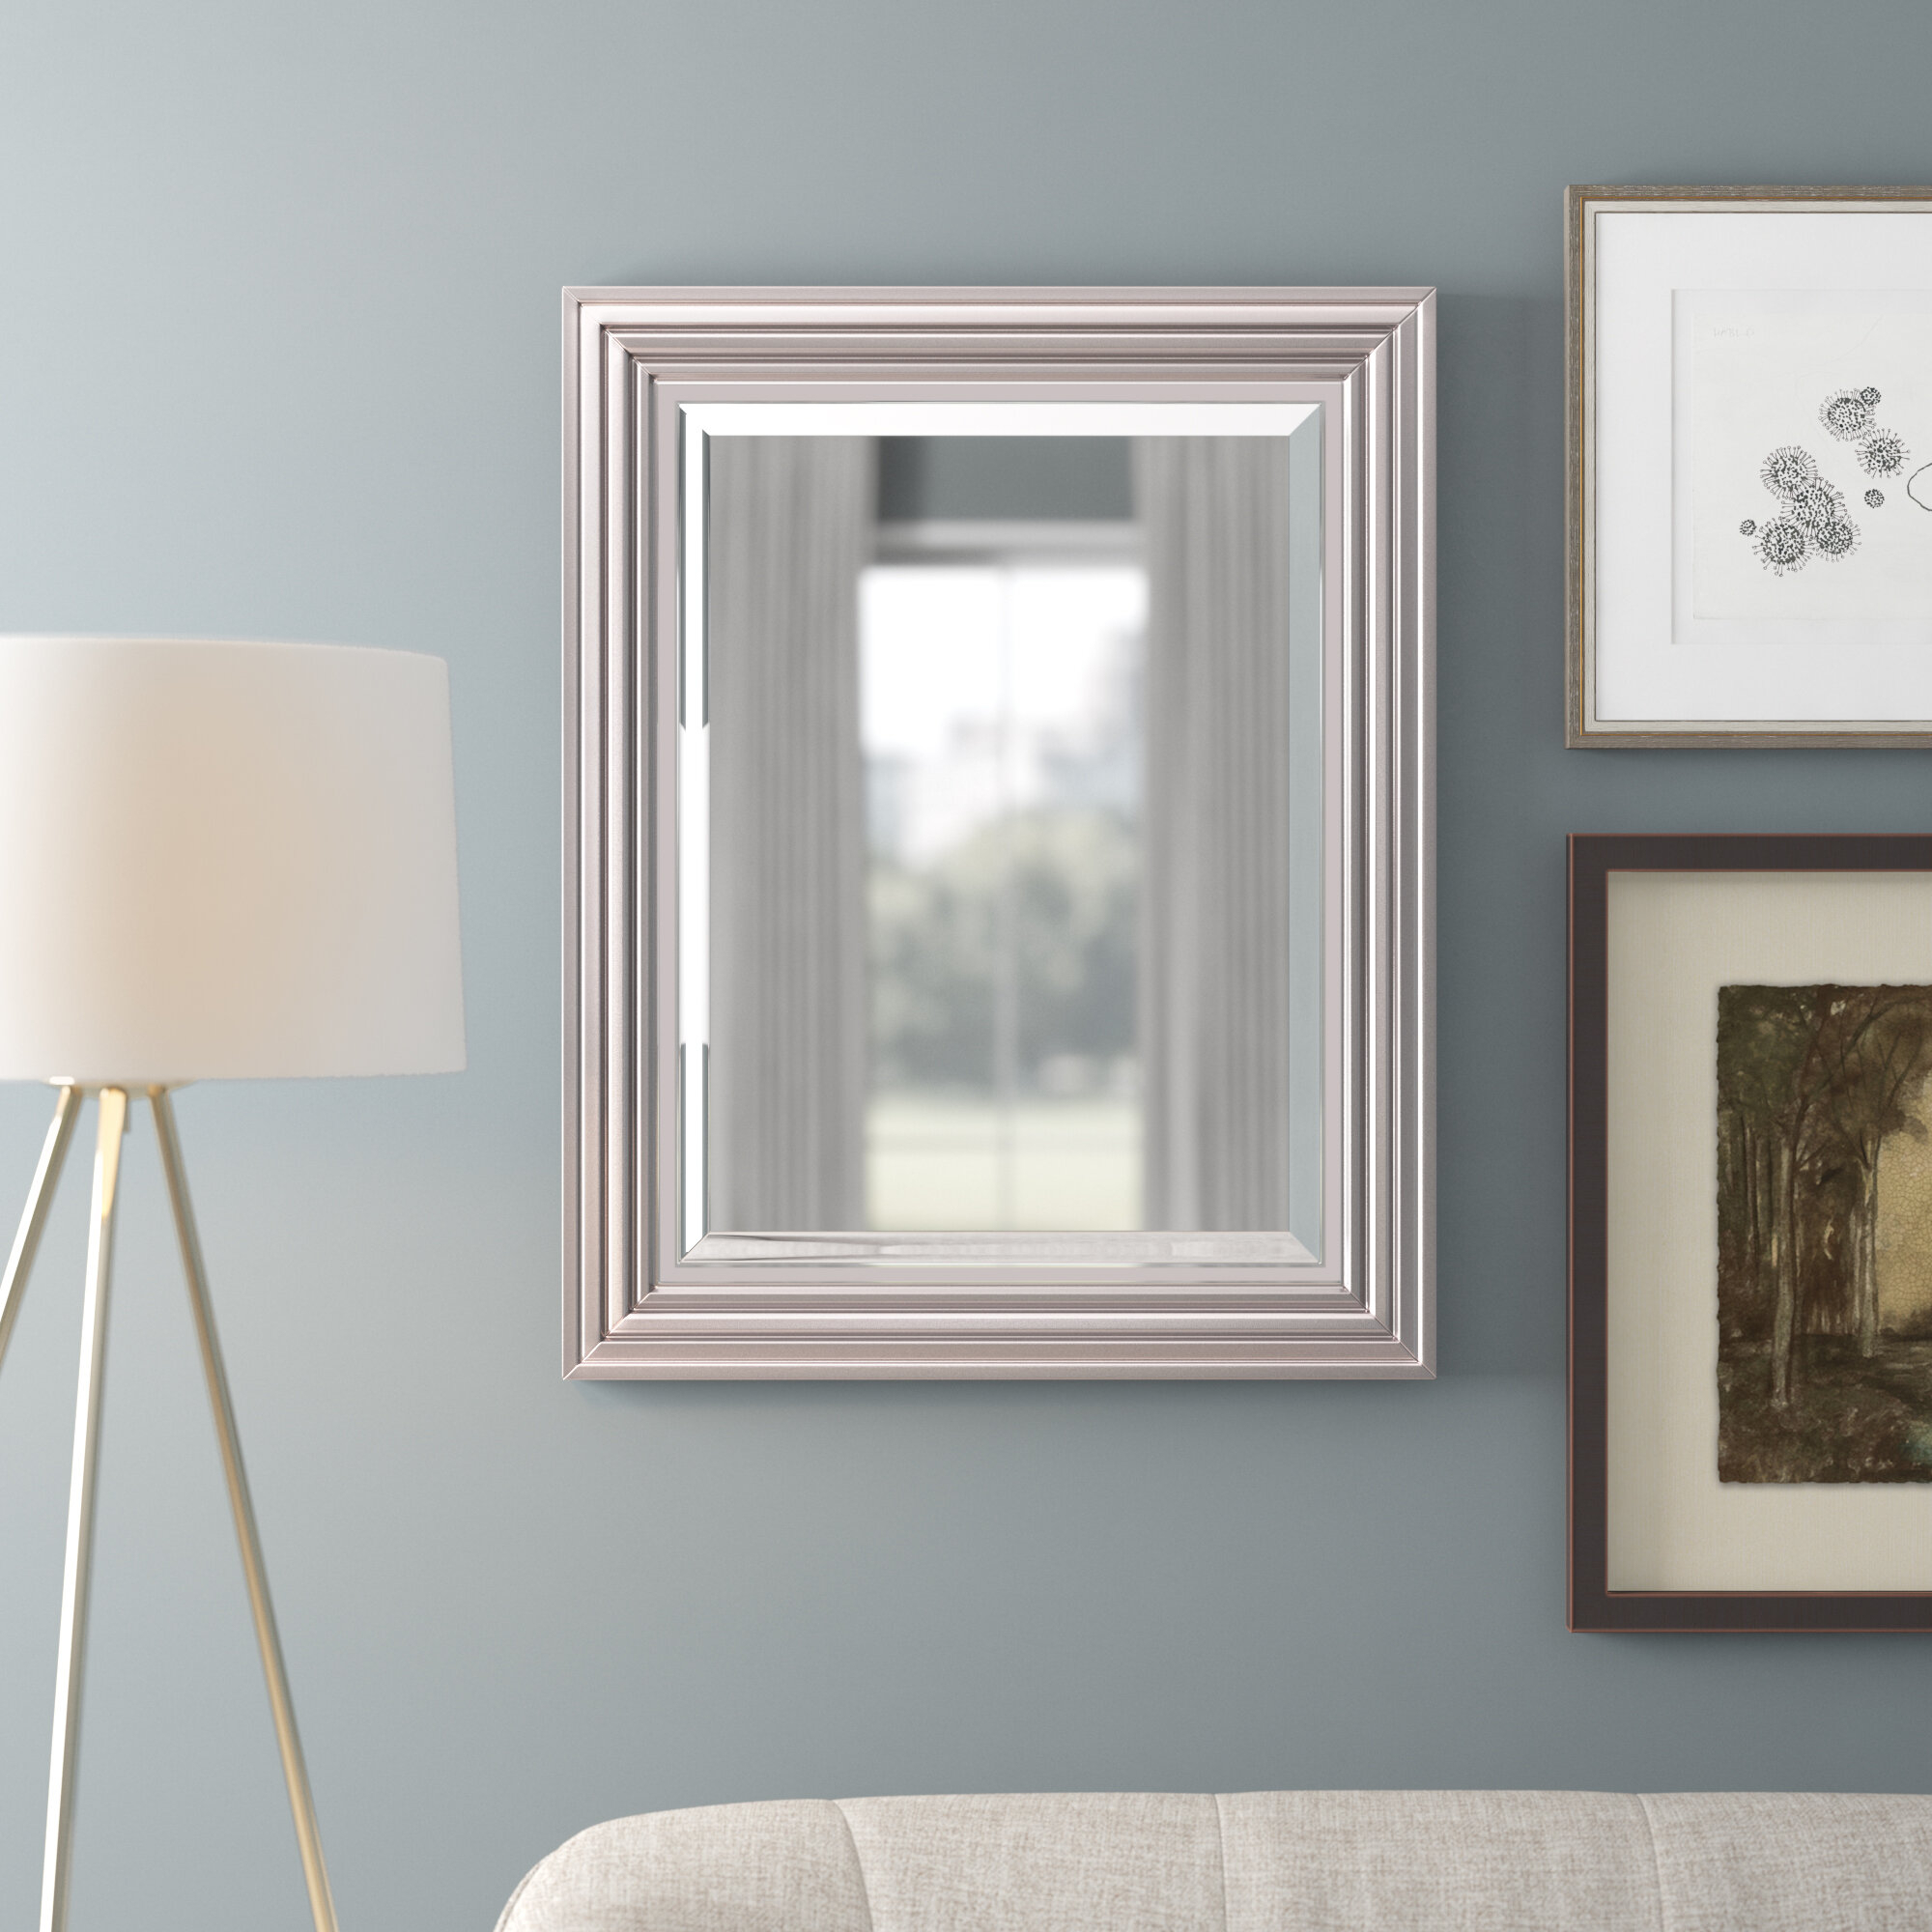 Ahner Modern & Contemporary Beveled Accent Mirror Pertaining To Modern & Contemporary Beveled Accent Mirrors (View 4 of 30)